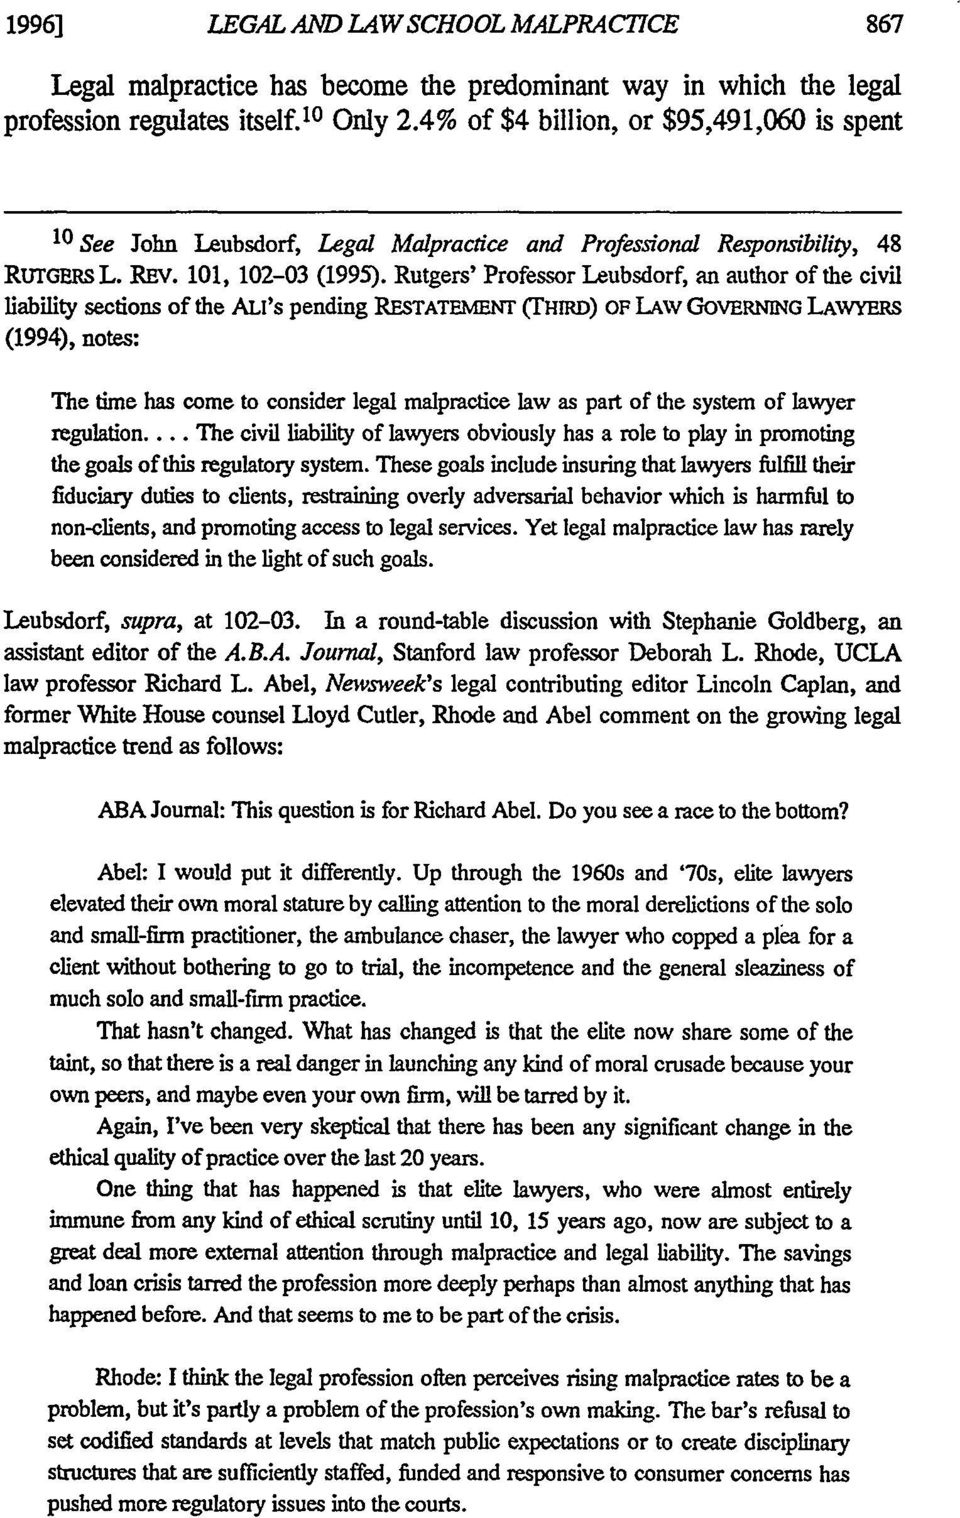 Rutgers' Professor Leubsdorf, an author of the civil liability sections of the ALI's pending RESTATEMENT (THiRD) OF LAW GOVERNING LAWYERS (1994), notes: The time has come to consider legal